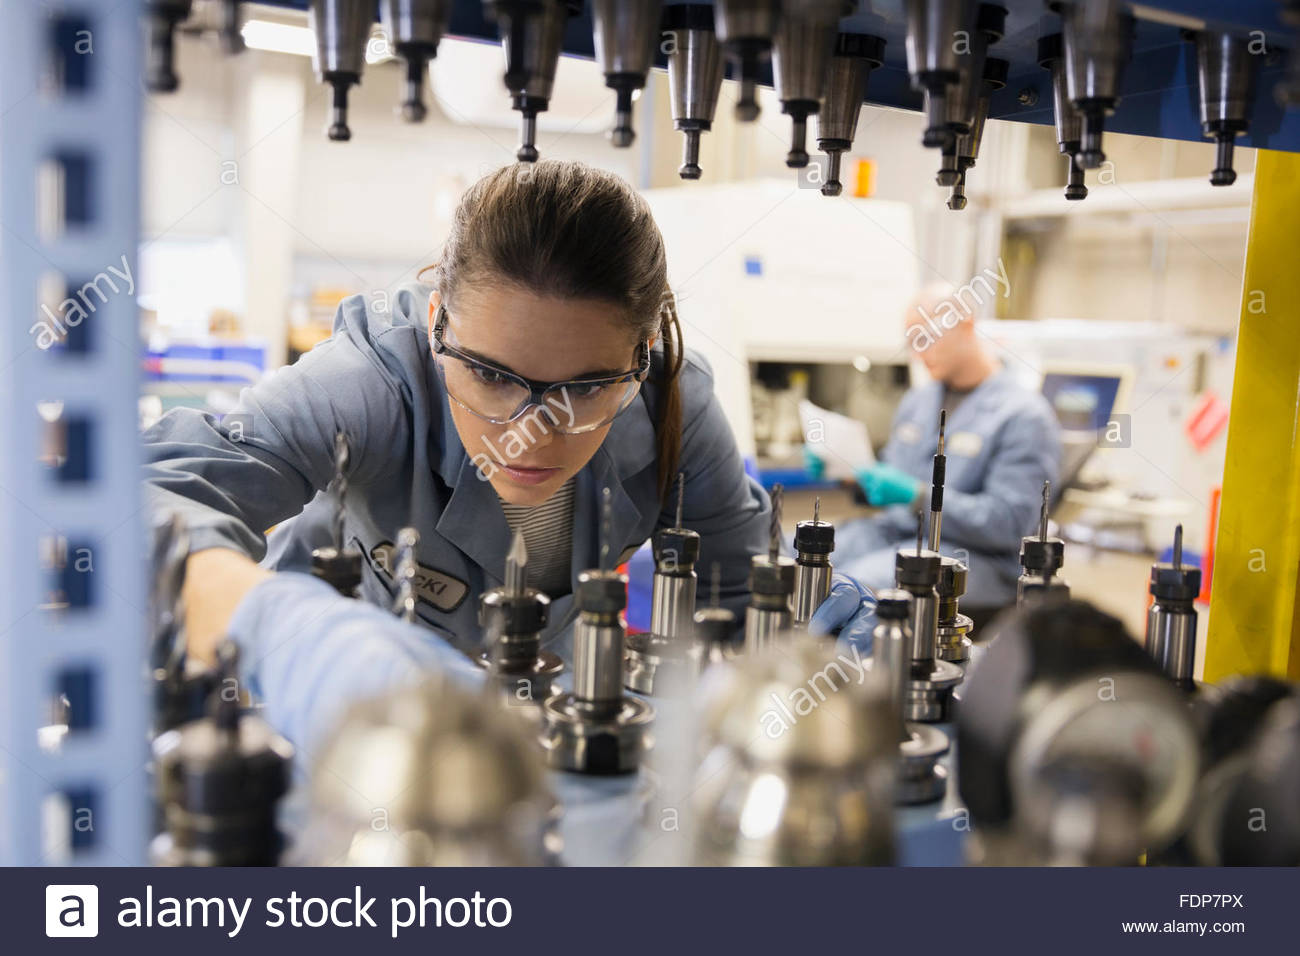 Worker examining machinery in textile factory - Stock Image